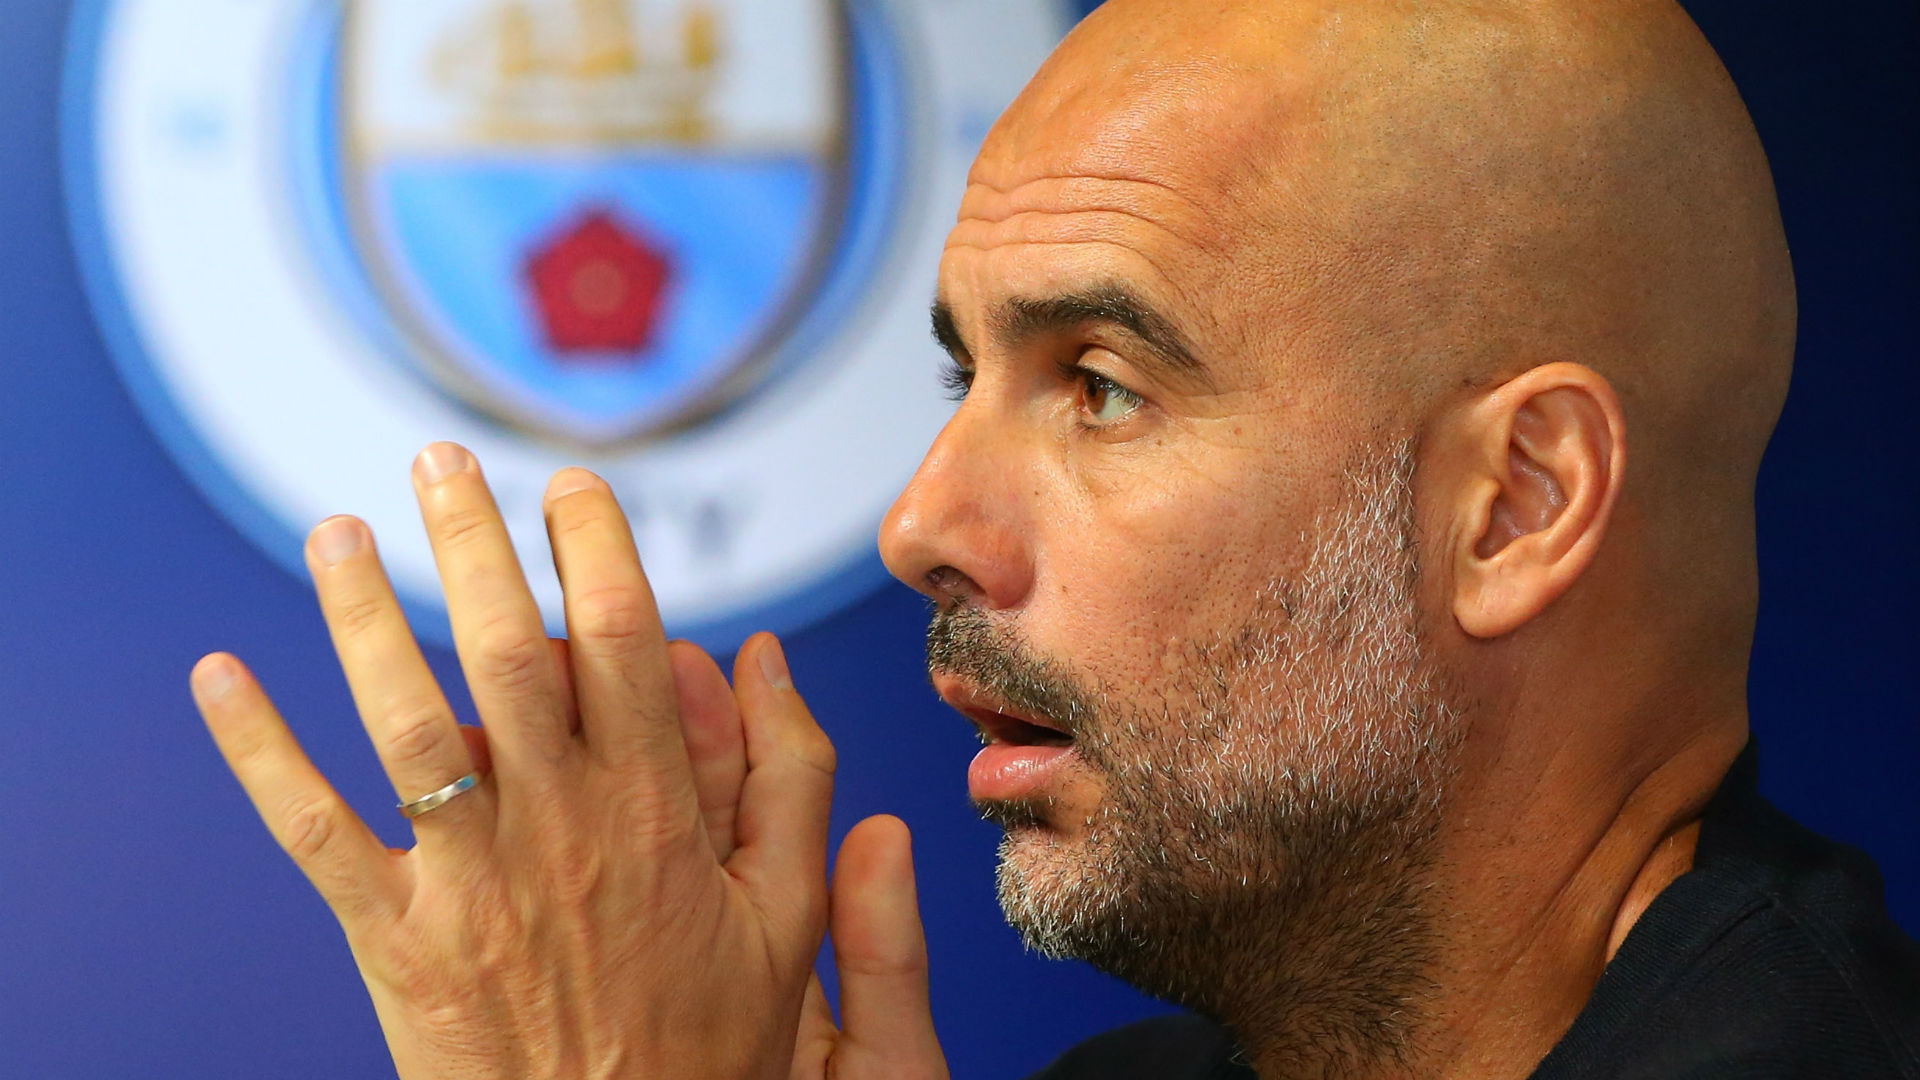 Pep Guardiola responds to 'Football Leaks' regarding Man City's finances